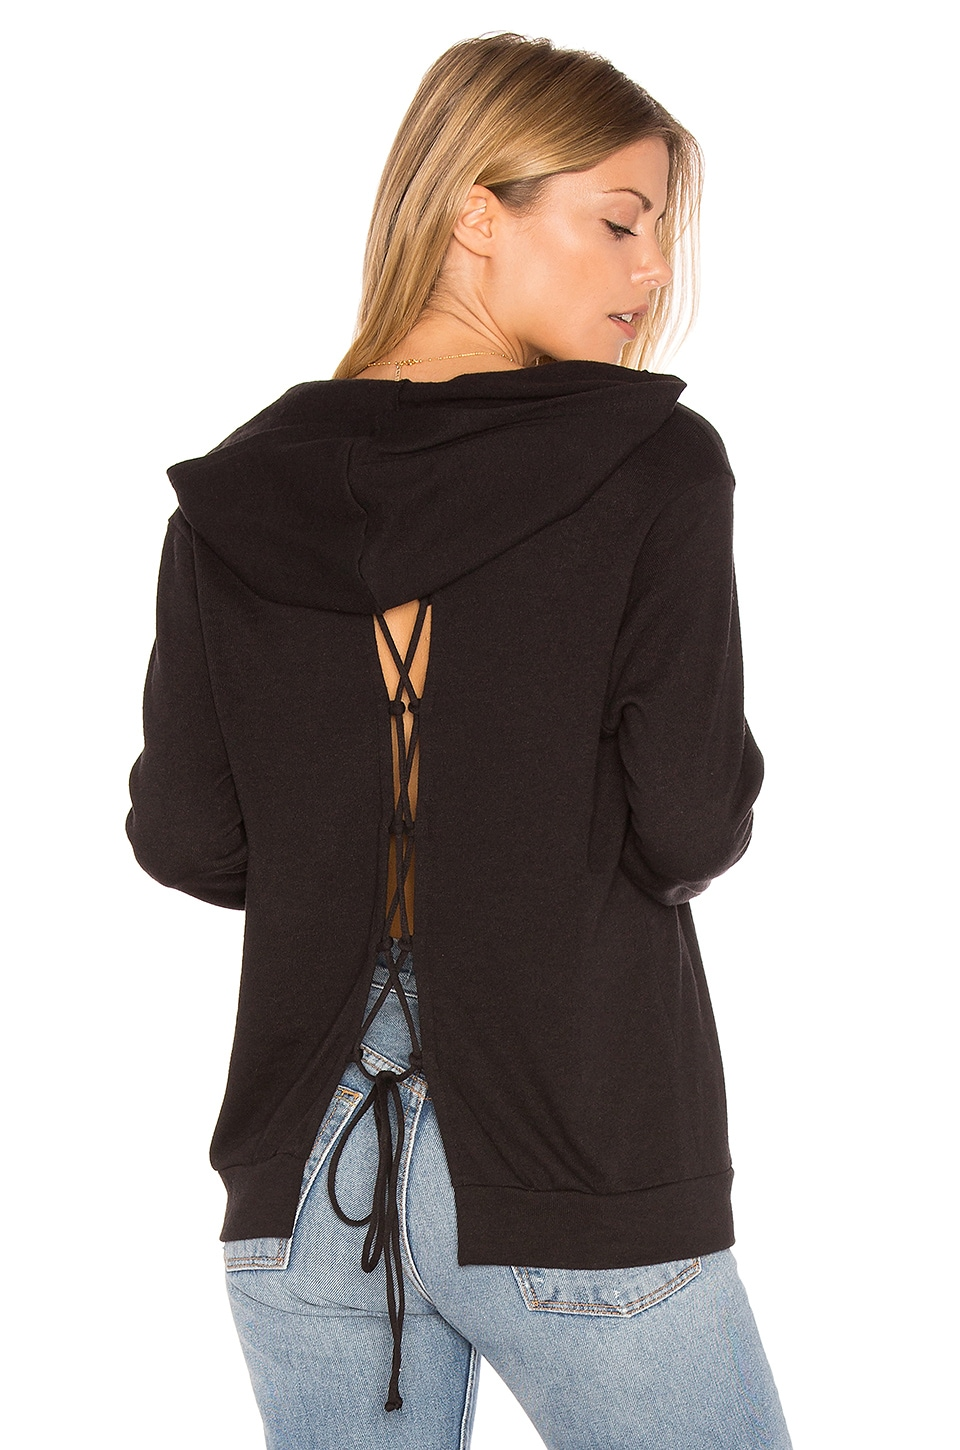 Lanston Lace-Up Back Hoodie in Black